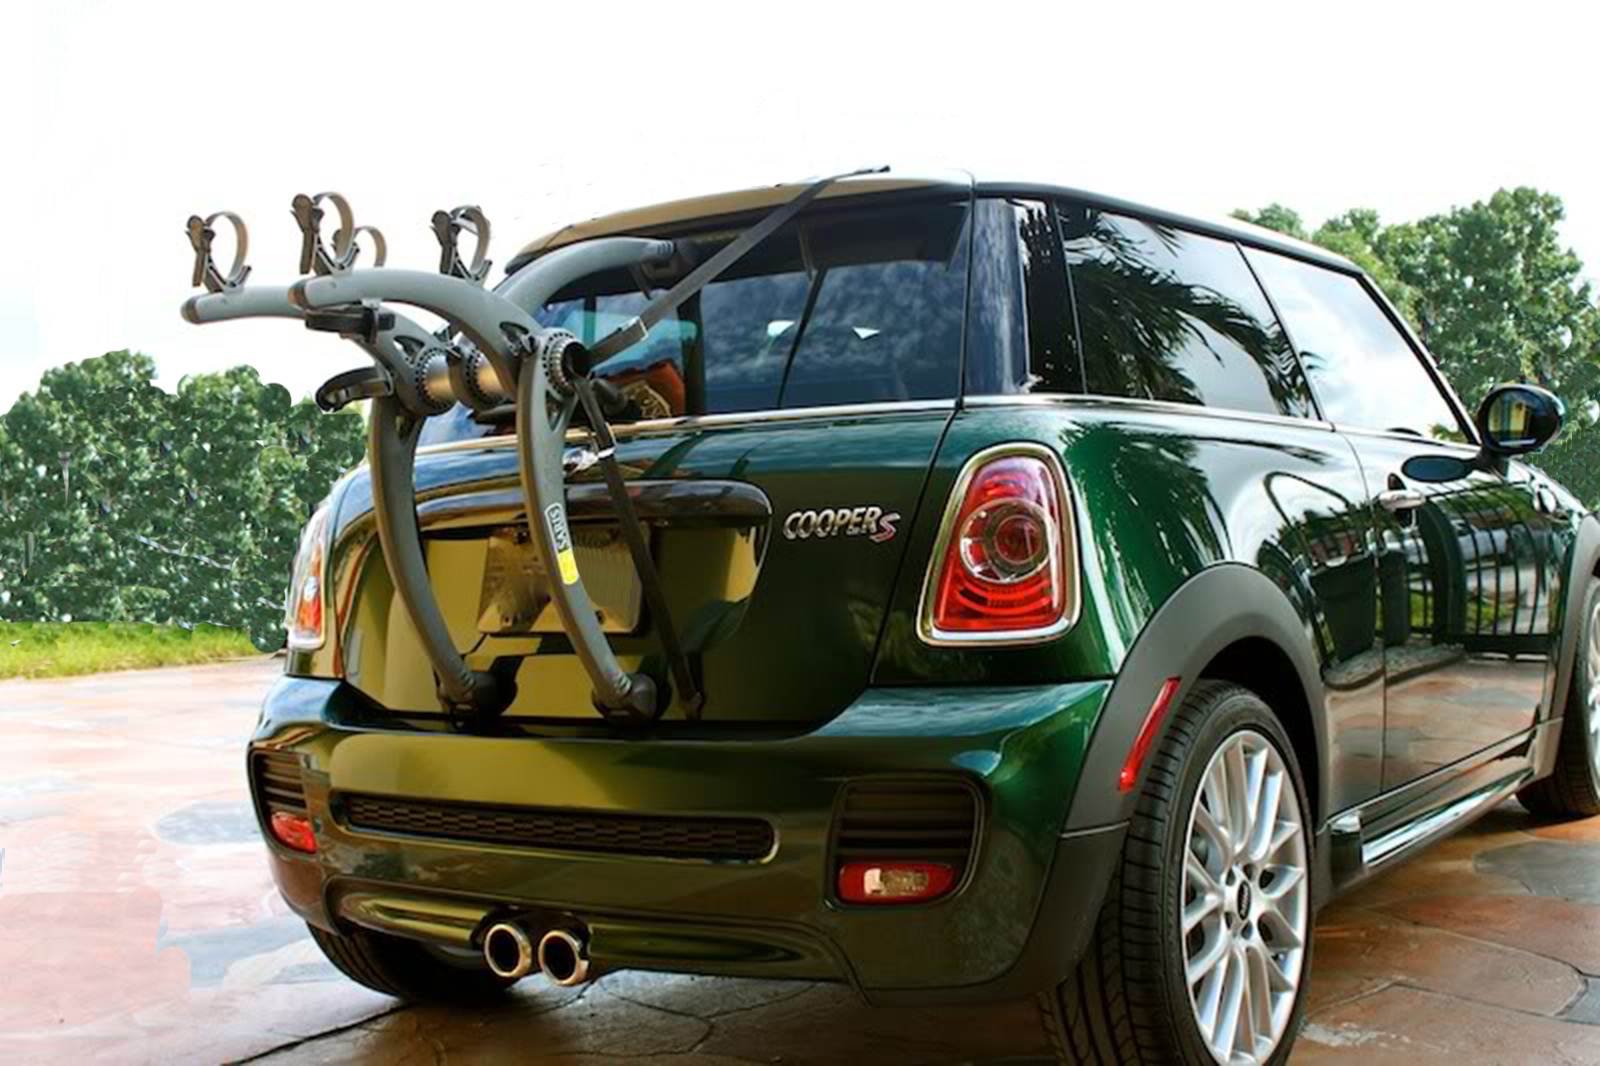 Mini Cooper S Bike Rack Buyers Guide 2020